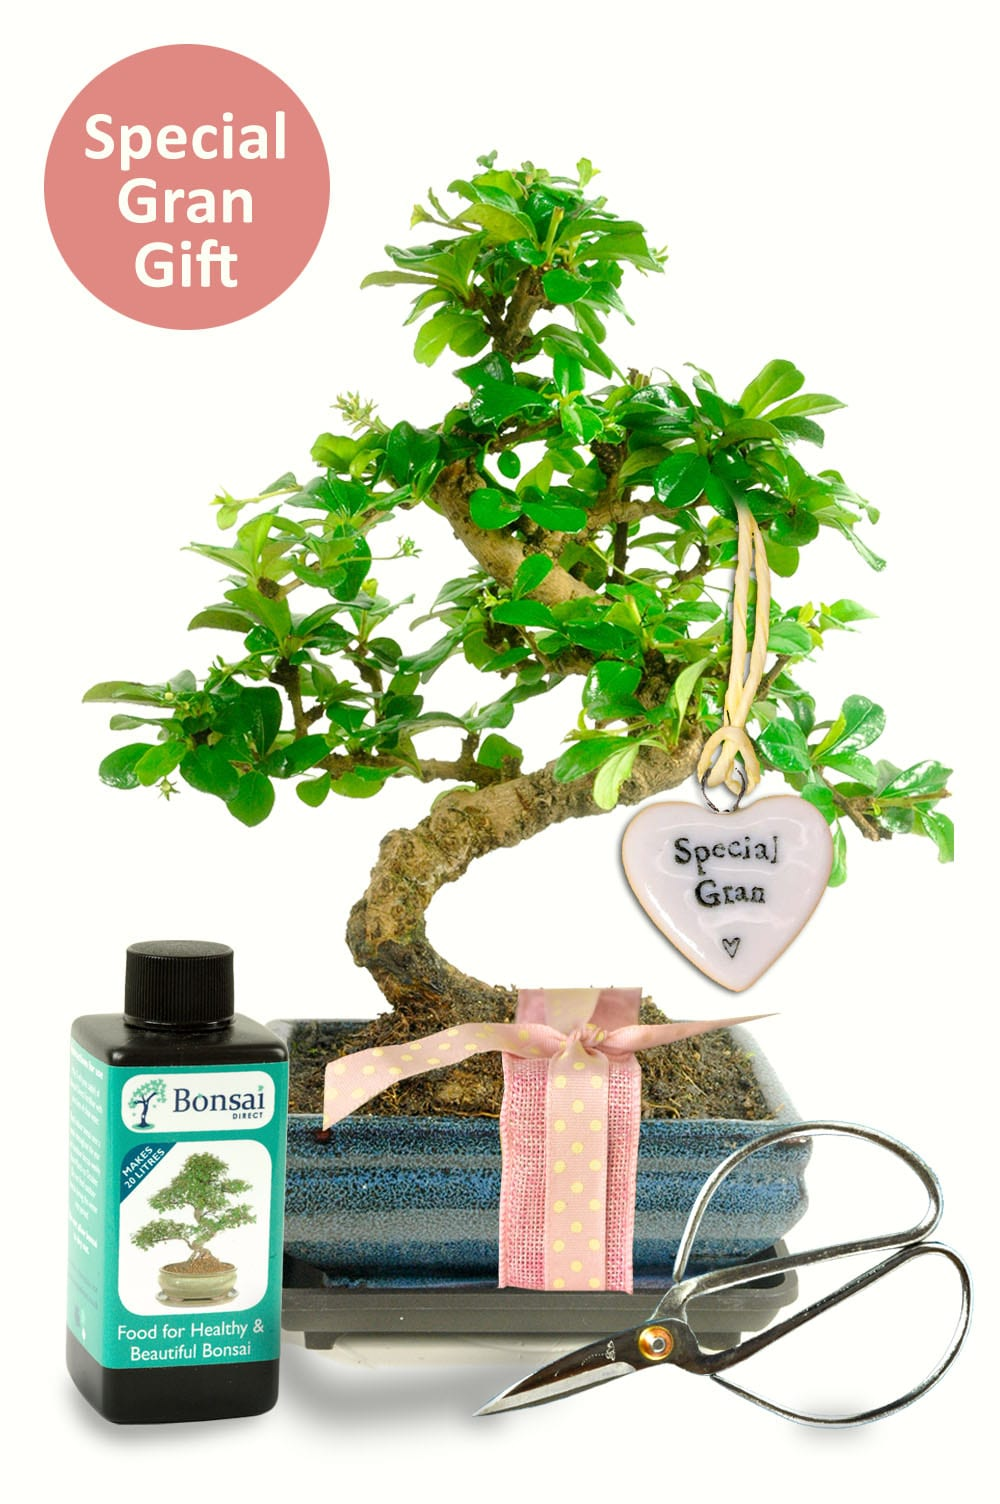 Twisty indoor bonsai for special gran